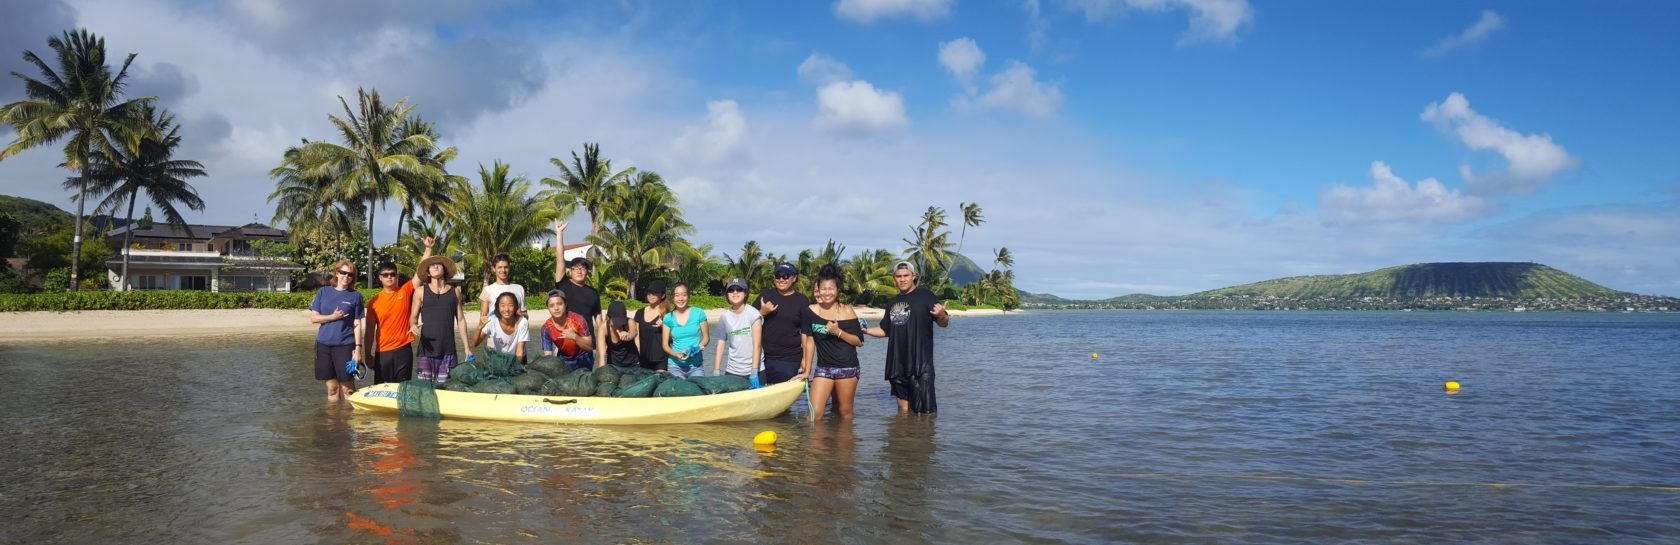 Community volunteers assist with removing invasive alien algae from Maunalua Bay